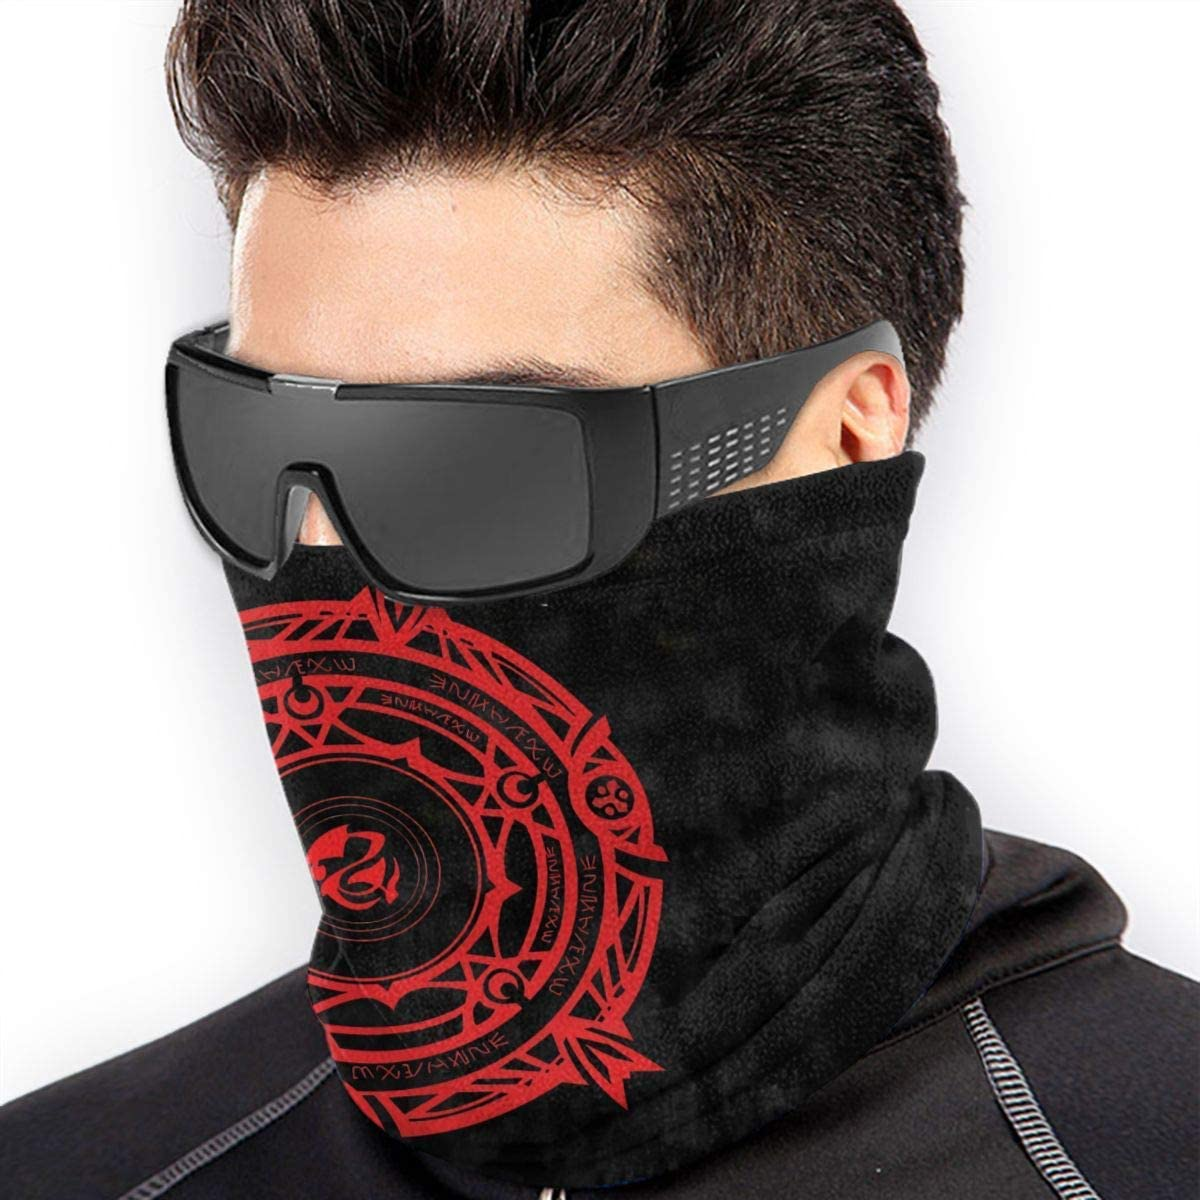 High School DxD Neck Warmers Gaiters Unisex Cold Weather Gear Winter Face Mask Black